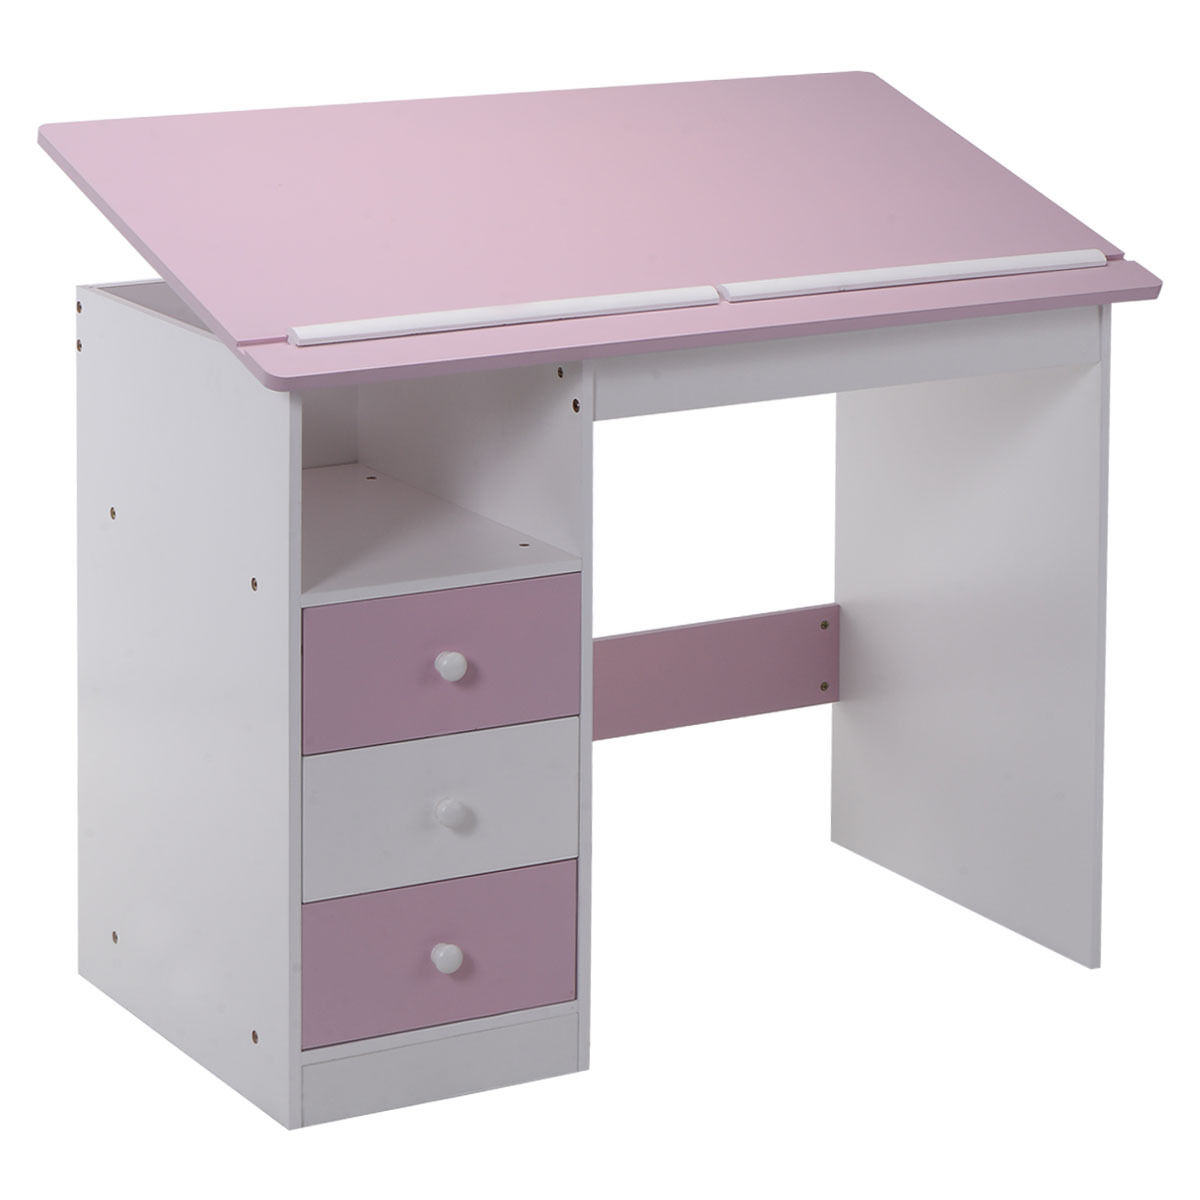 S Pink Desk Kids Student Drawing Table Simple Modern Homework Study Office